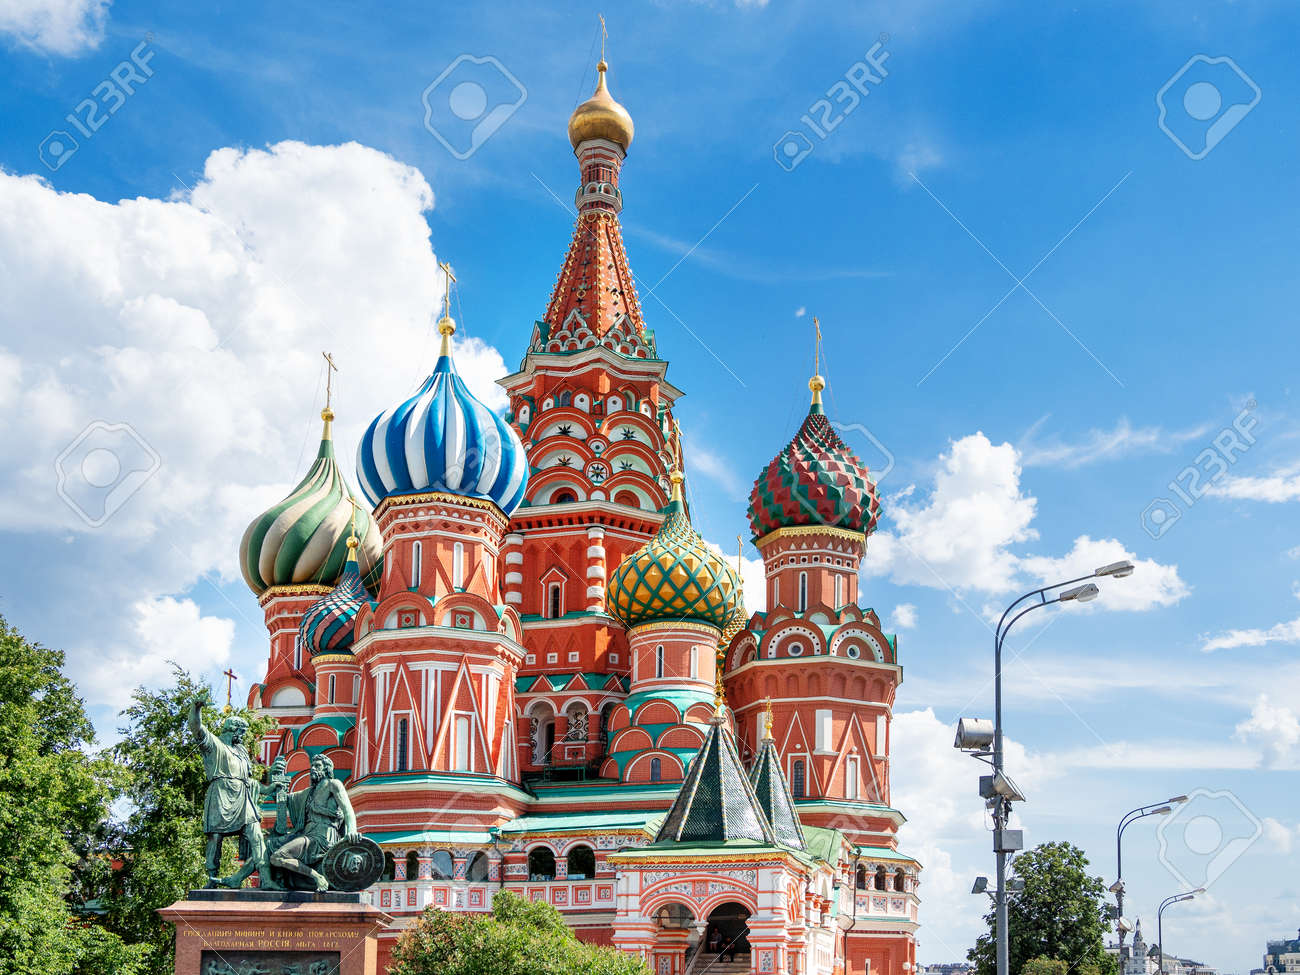 Domes of Saint Basil Cathedral on blue sky background. Monument to Minin and Pozharsky. Famous landmark of Moscow, Russia. - 159641004